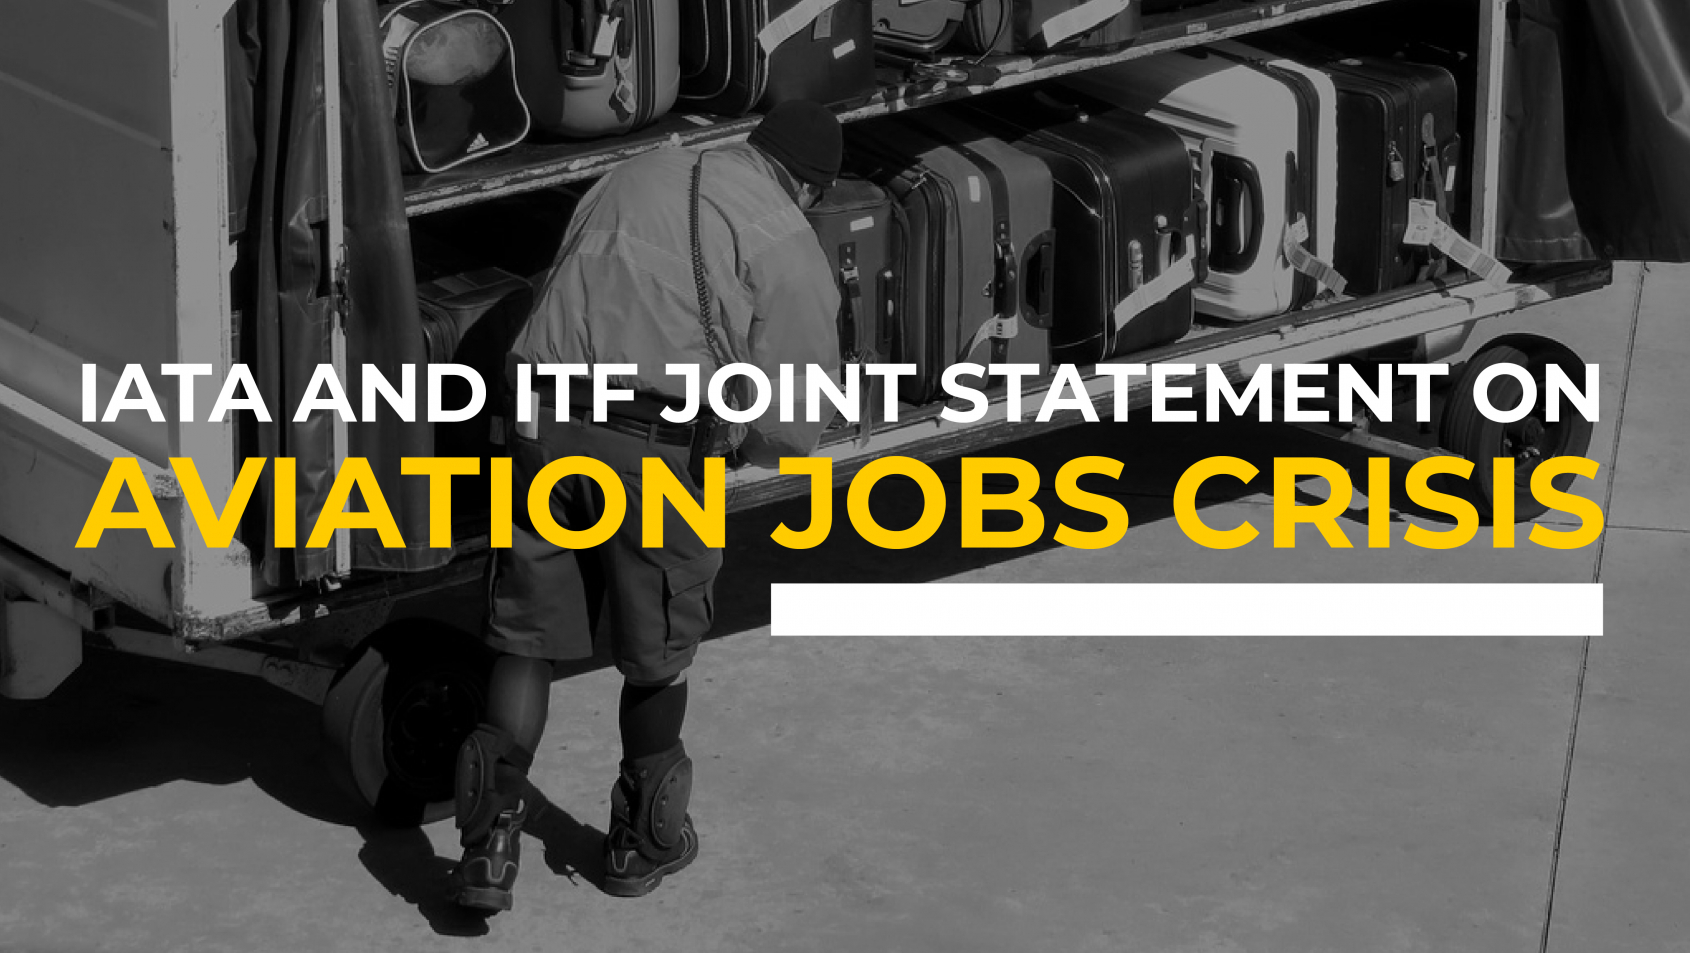 Catastrophic jobs crisis on horizon without government intervention